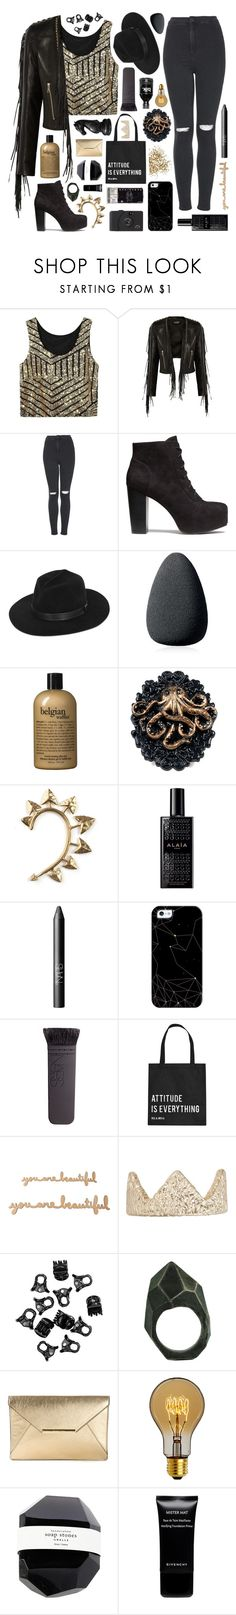 """""""'til the sun dies"""" by rowanthethree ❤ liked on Polyvore featuring Balmain, Topshop, H&M, Gladys Tamez Millinery, Christian Dior, philosophy, Rachel Entwistle, Alaïa, NARS Cosmetics and Casetify"""